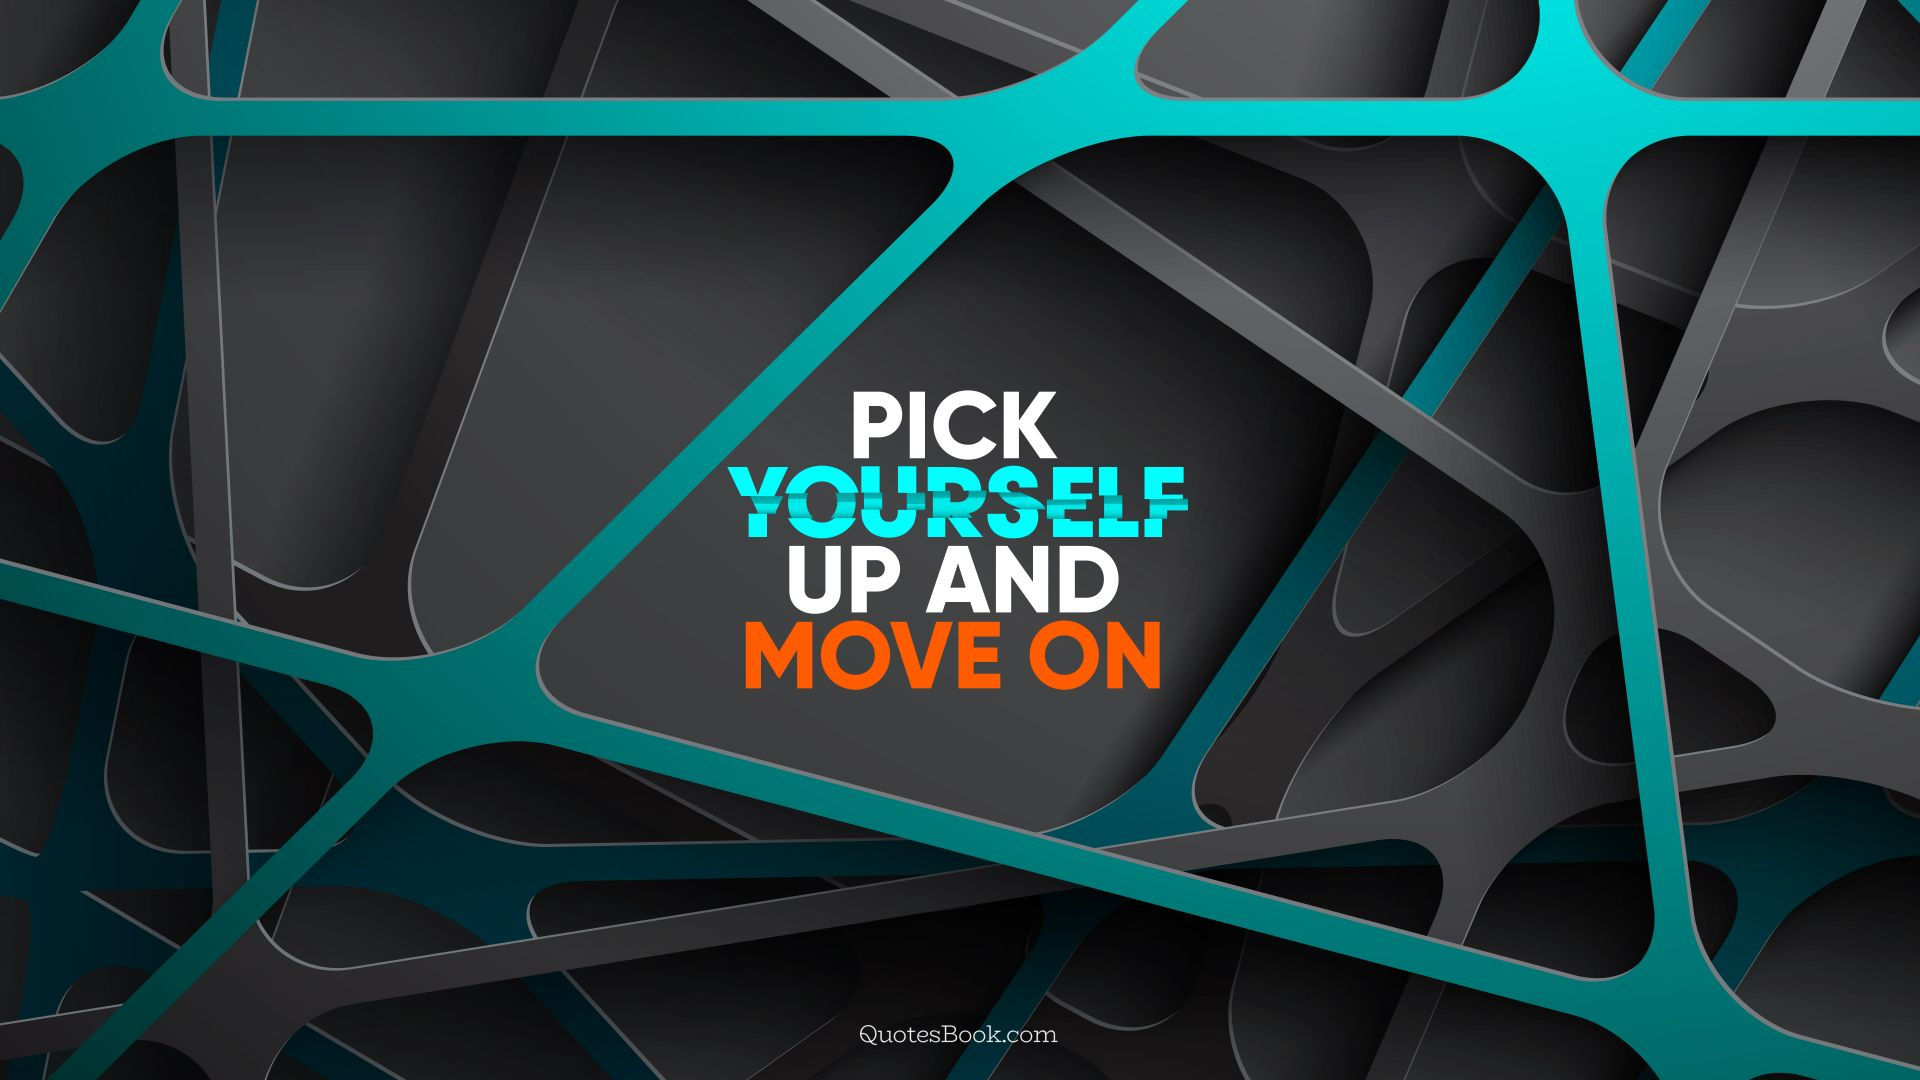 Pick yourself up and move on. - Quote by QuotesBook